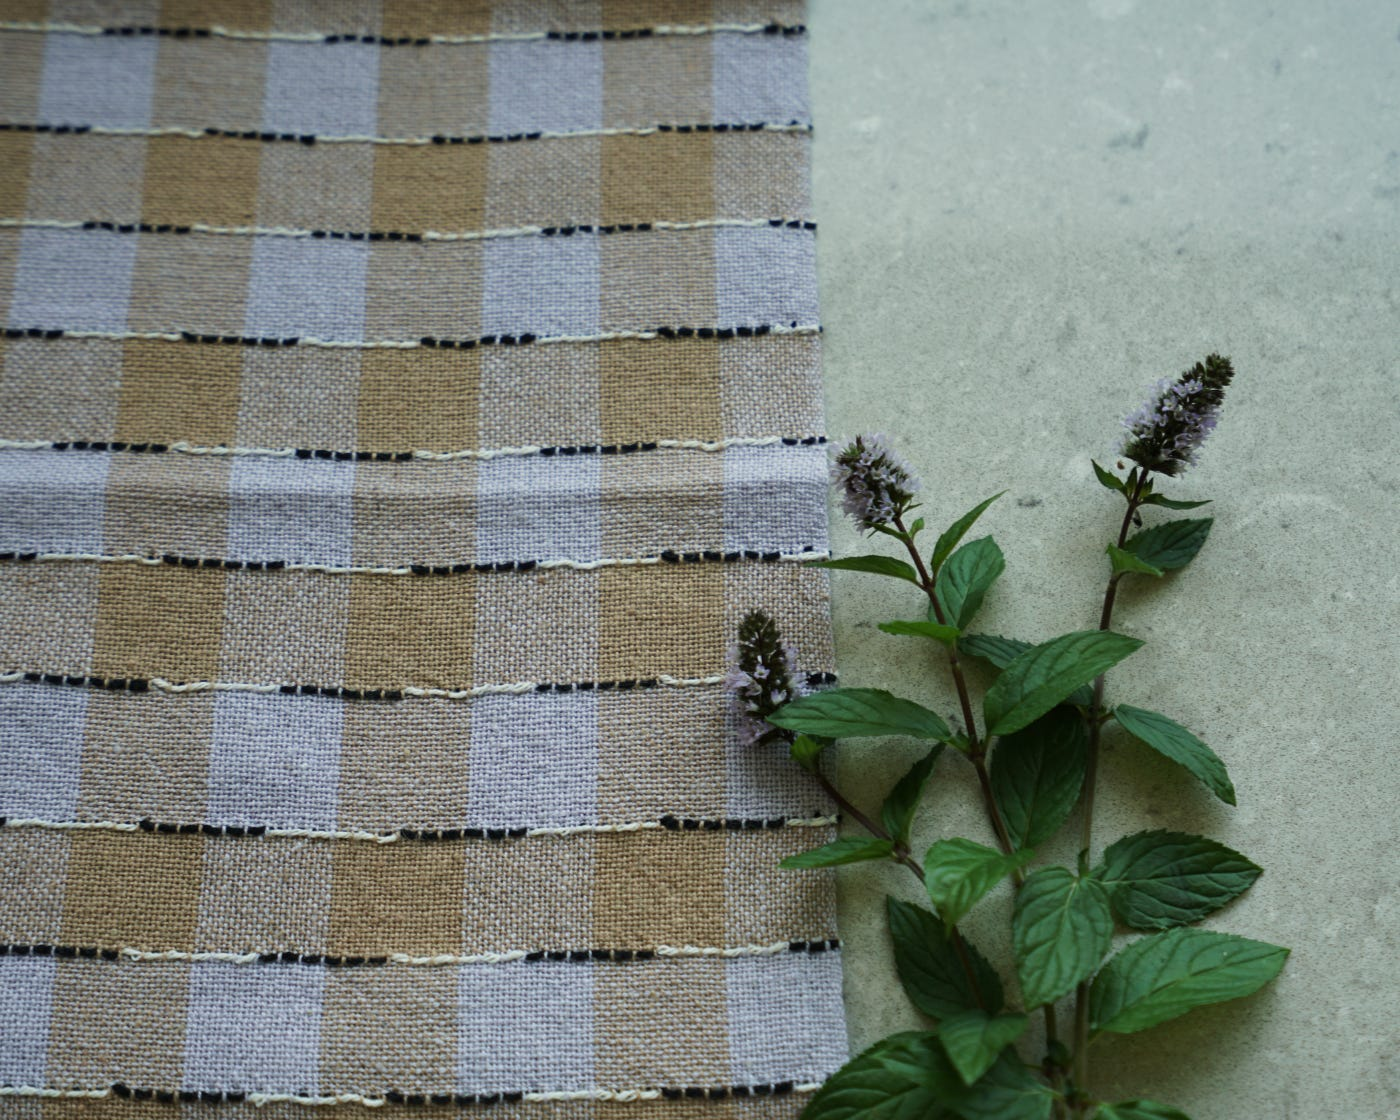 A flat cloth on a countertop with three flowering sprigs of mint